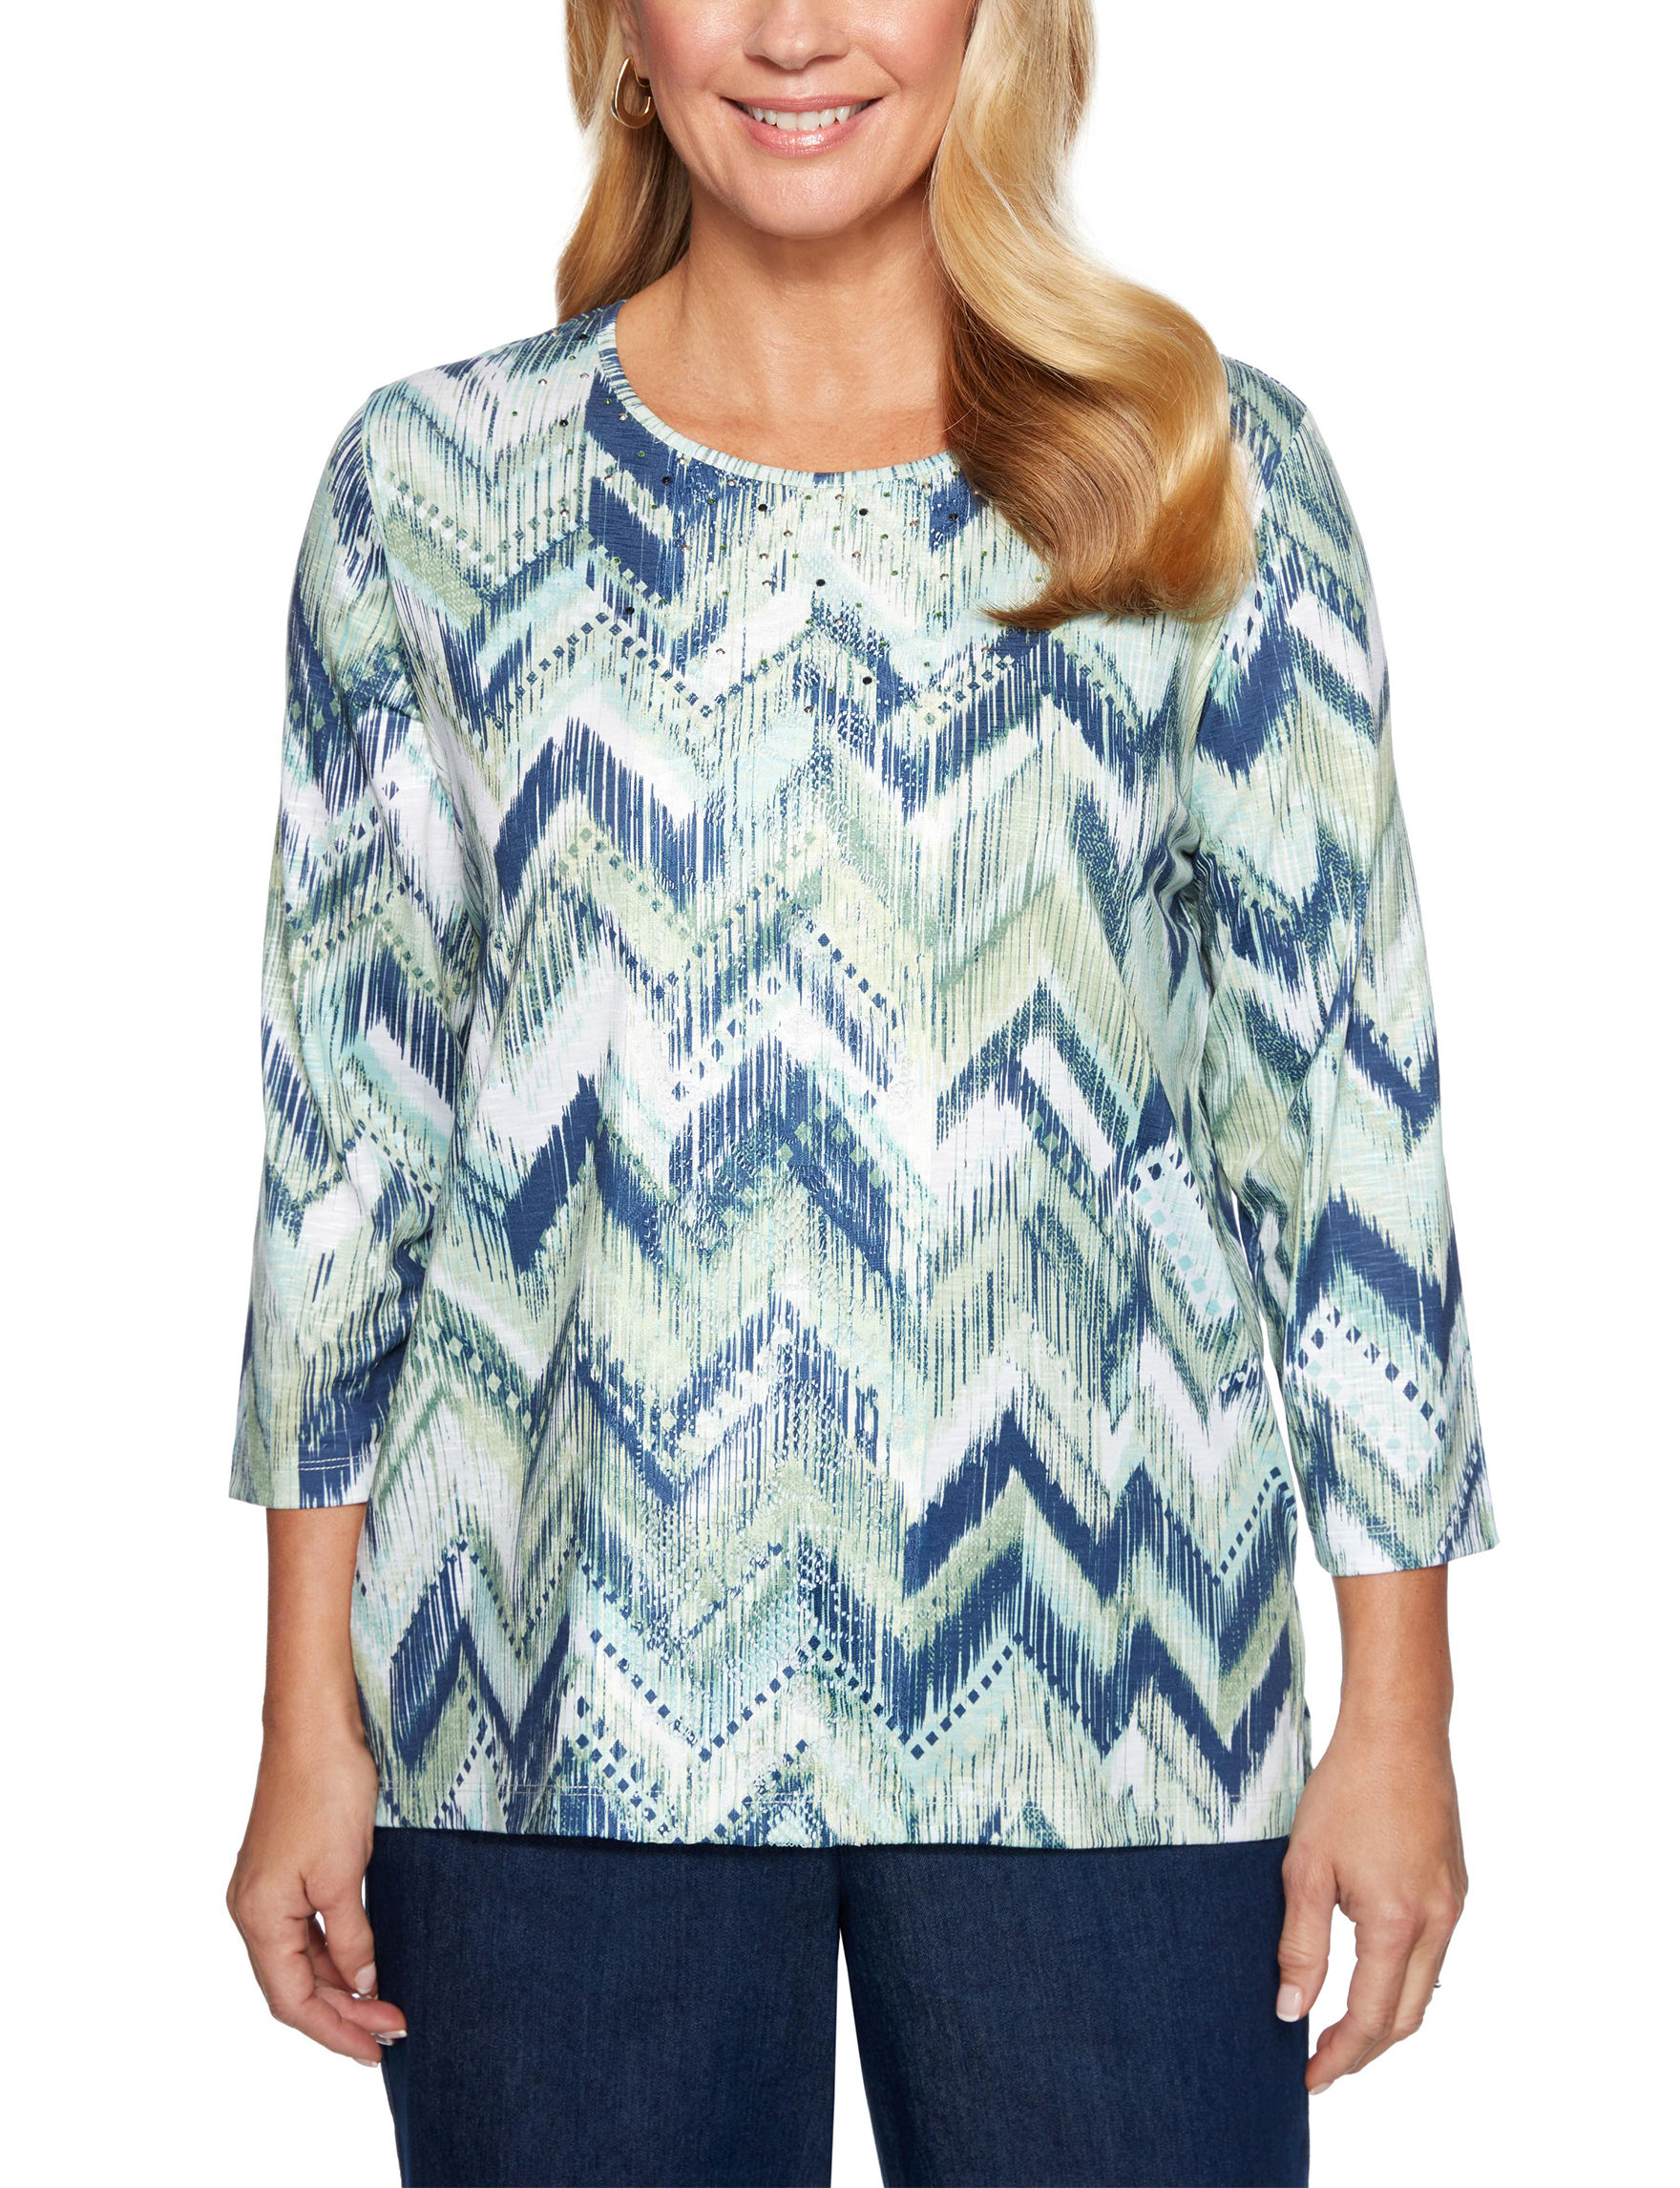 Alfred Dunner White Multi Shirts & Blouses